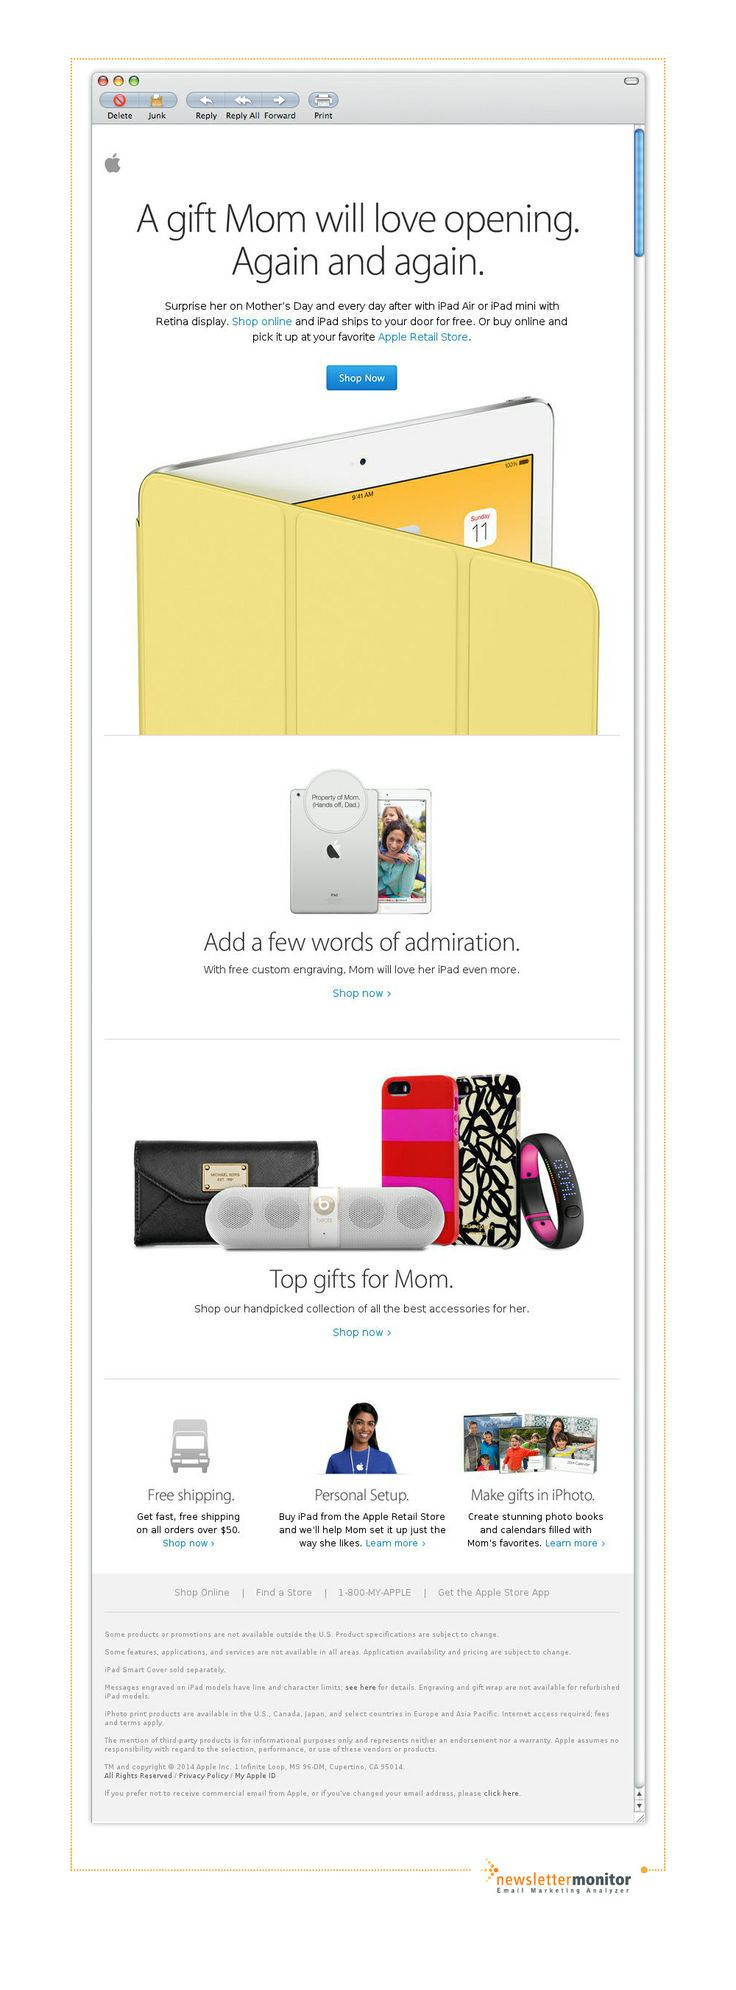 Brand: Apple | Subject: Make every day Mom's day.